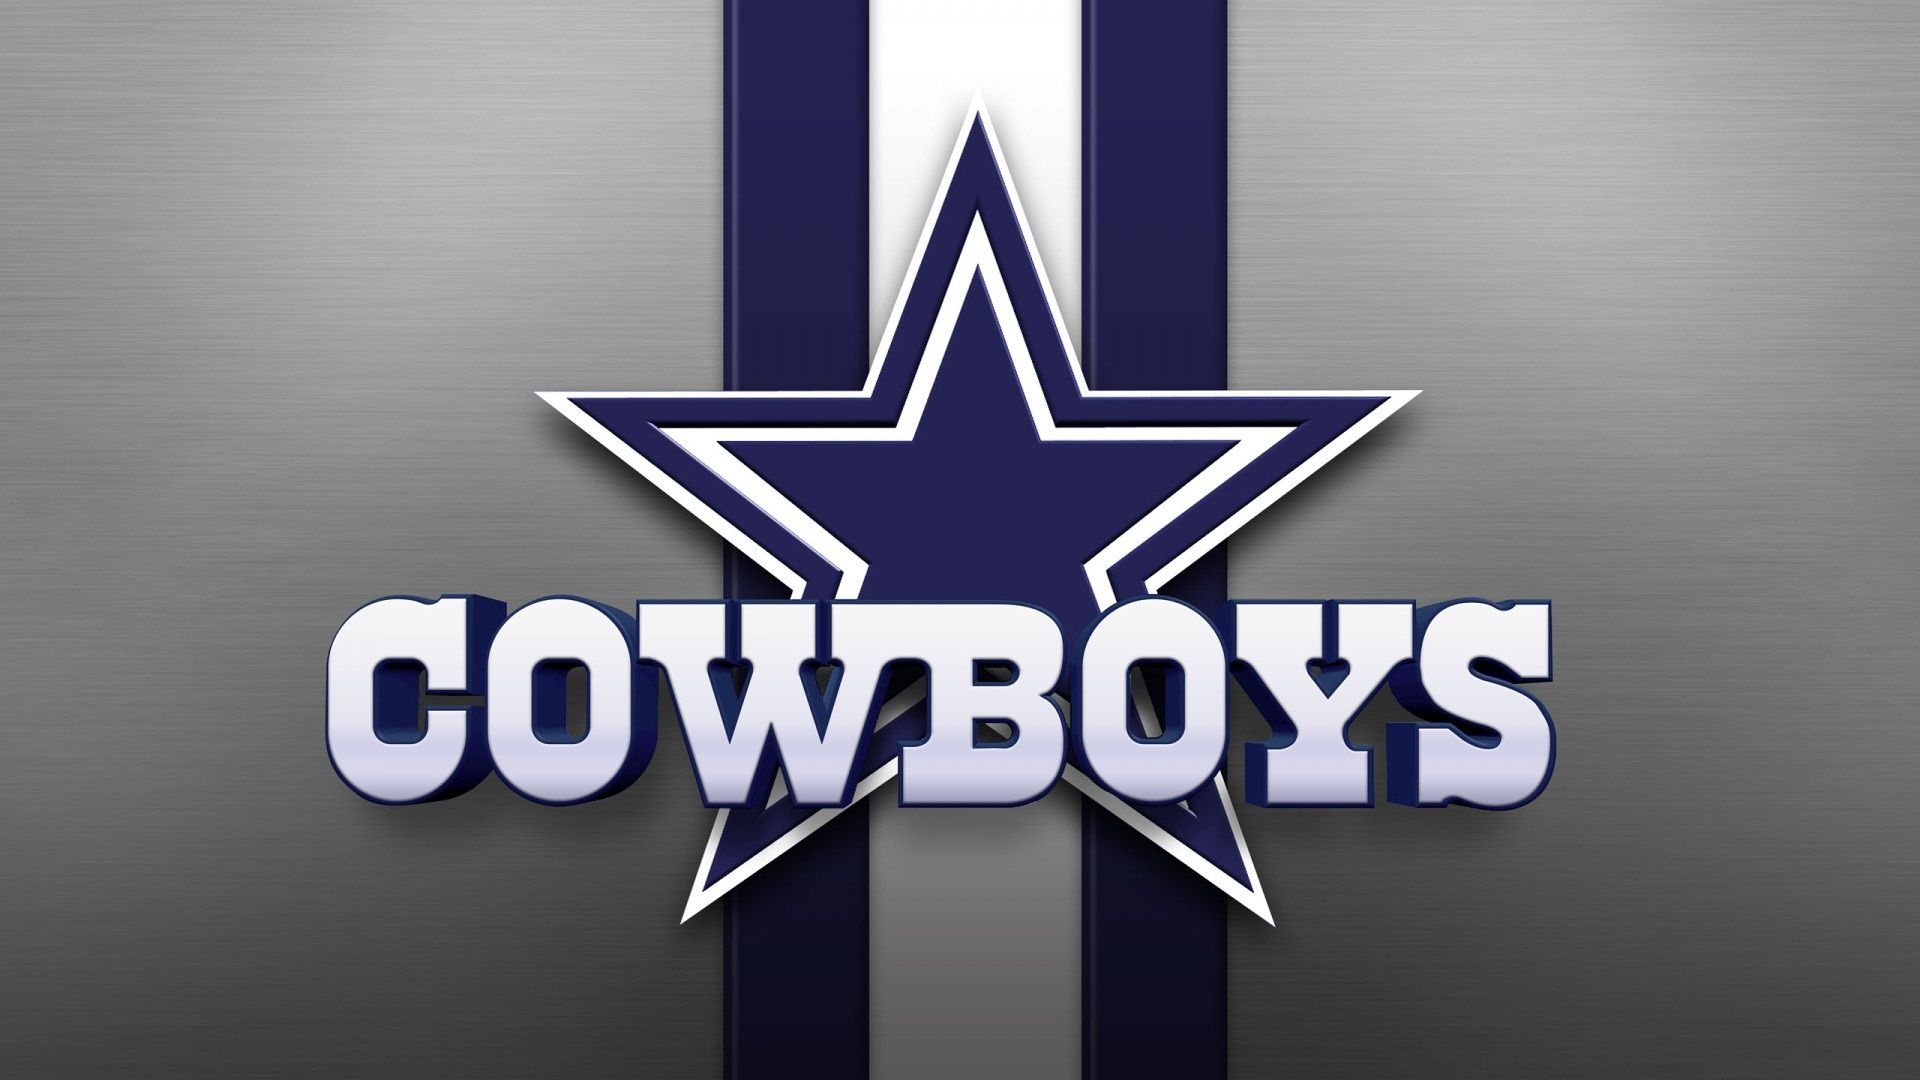 cowboys wallpapers - top free cowboys backgrounds - wallpaperaccess